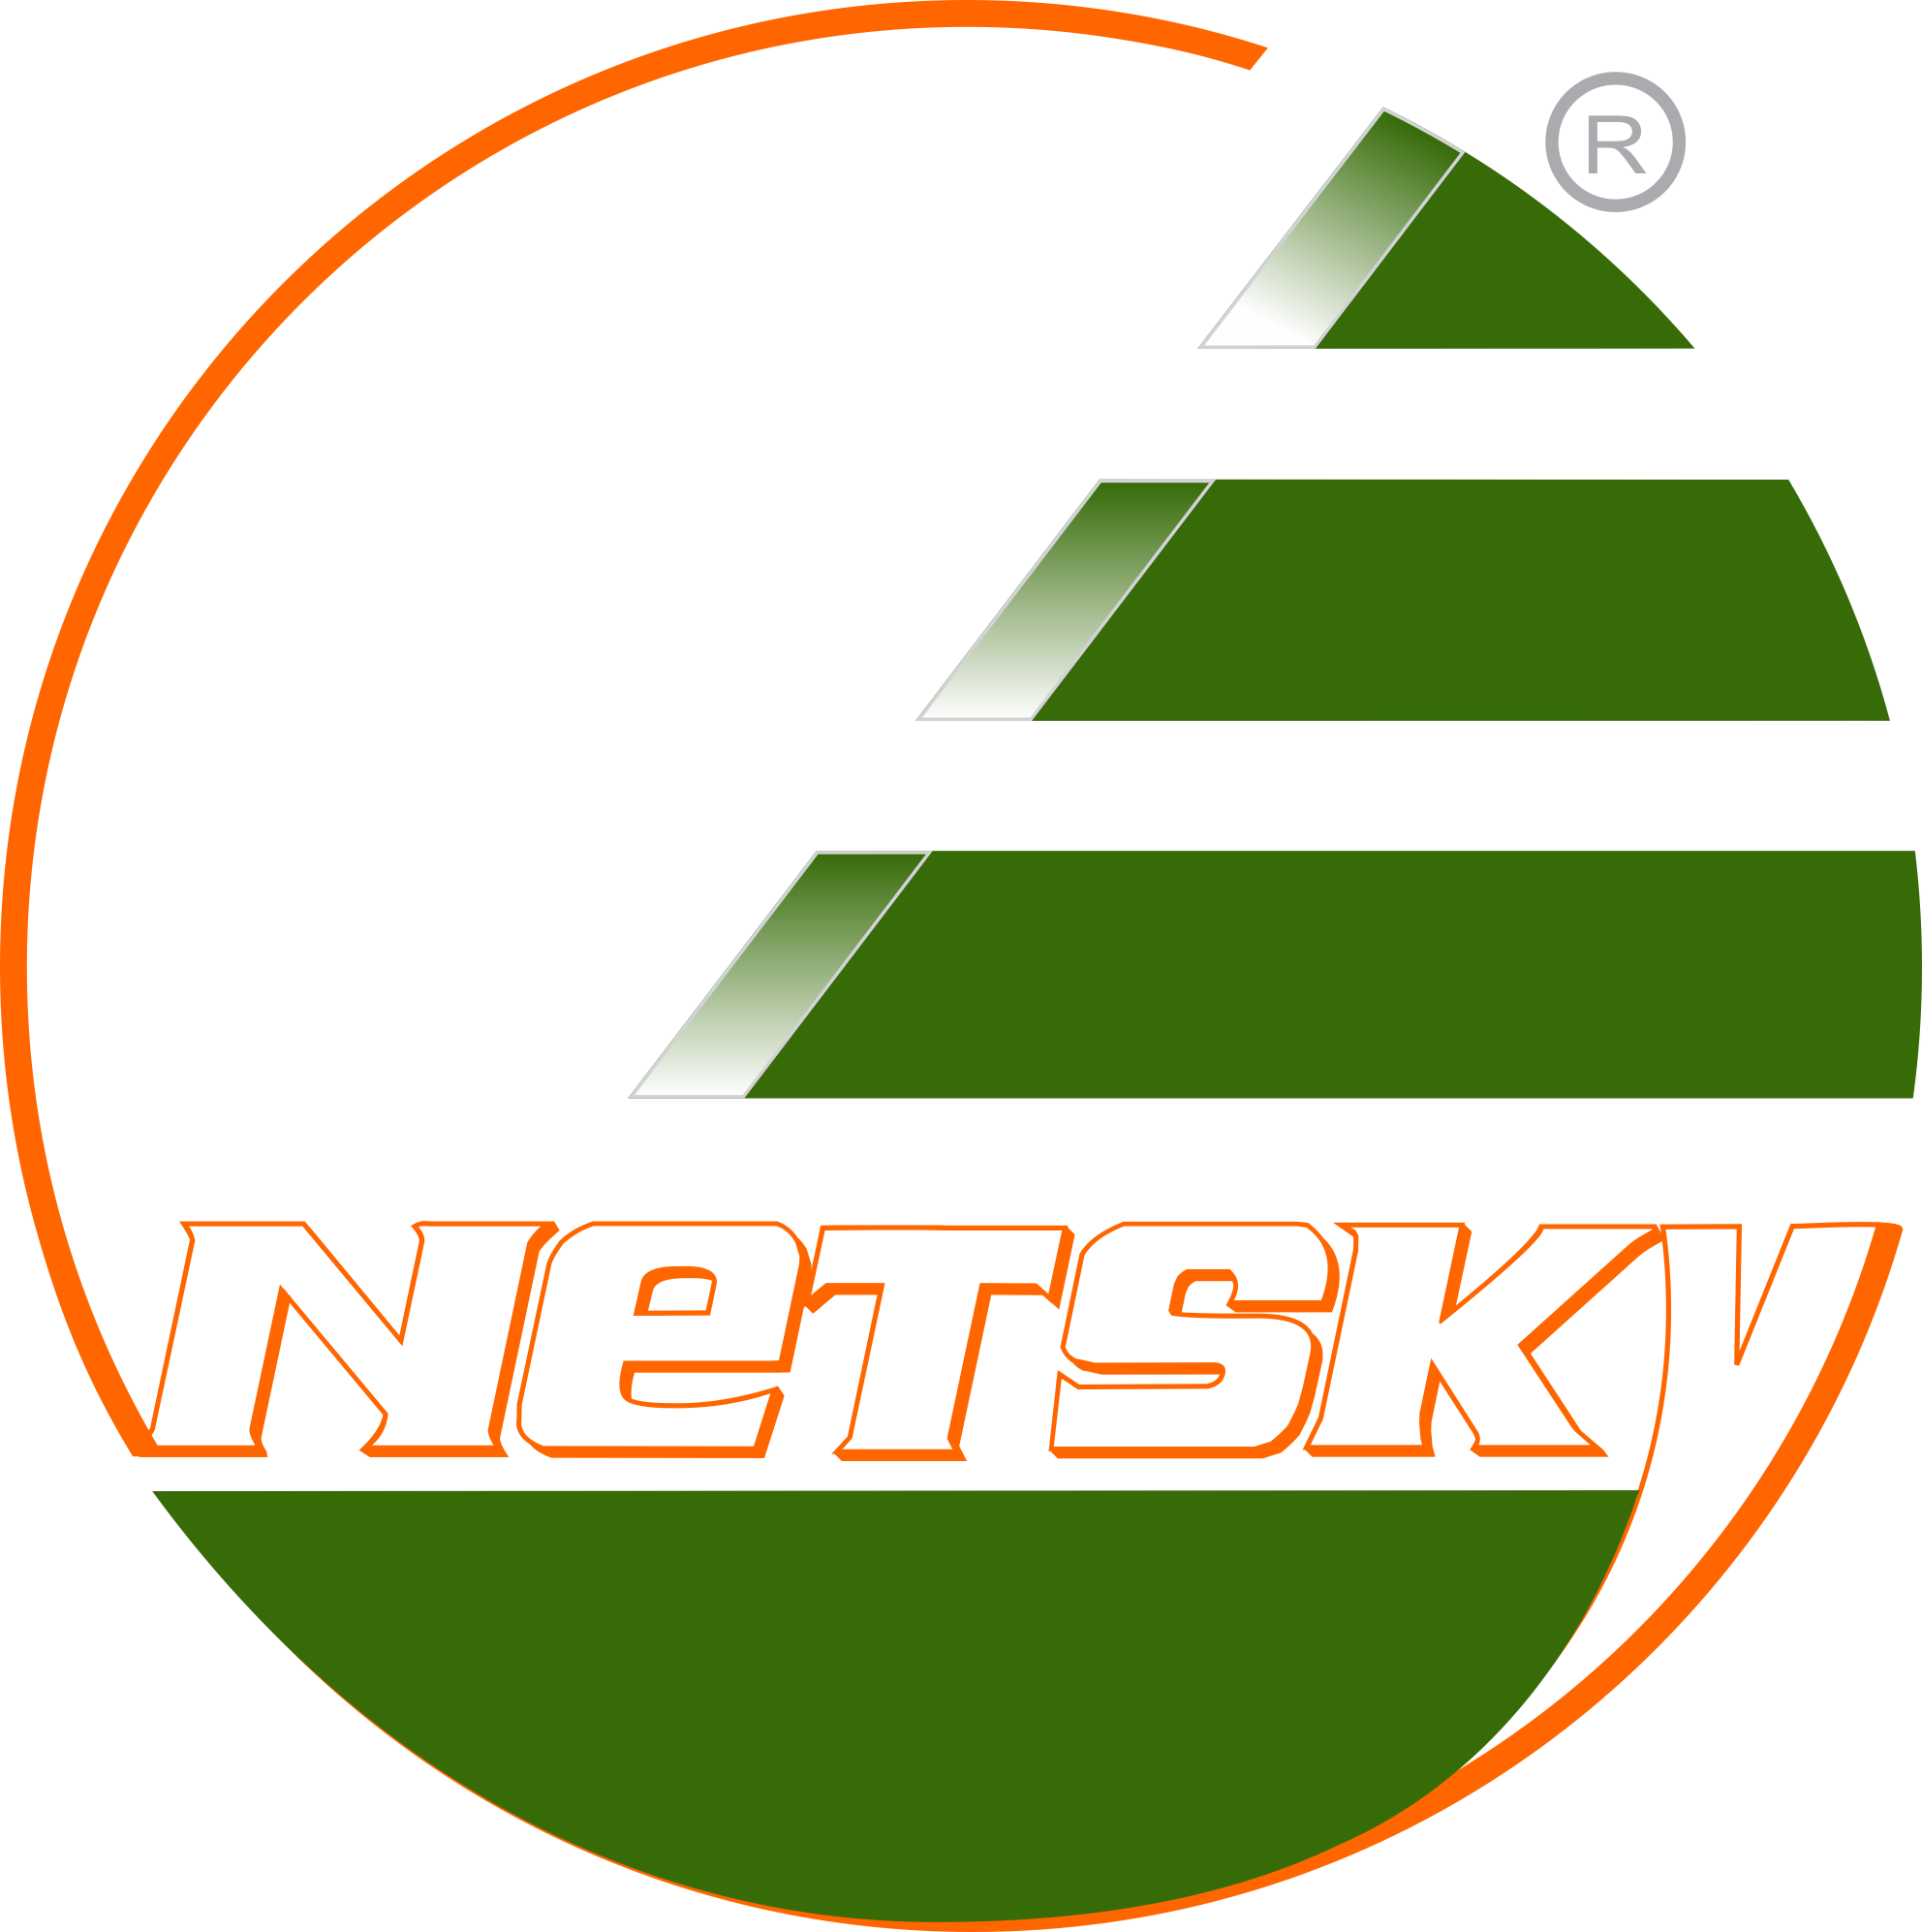 Netsky Co., Ltd